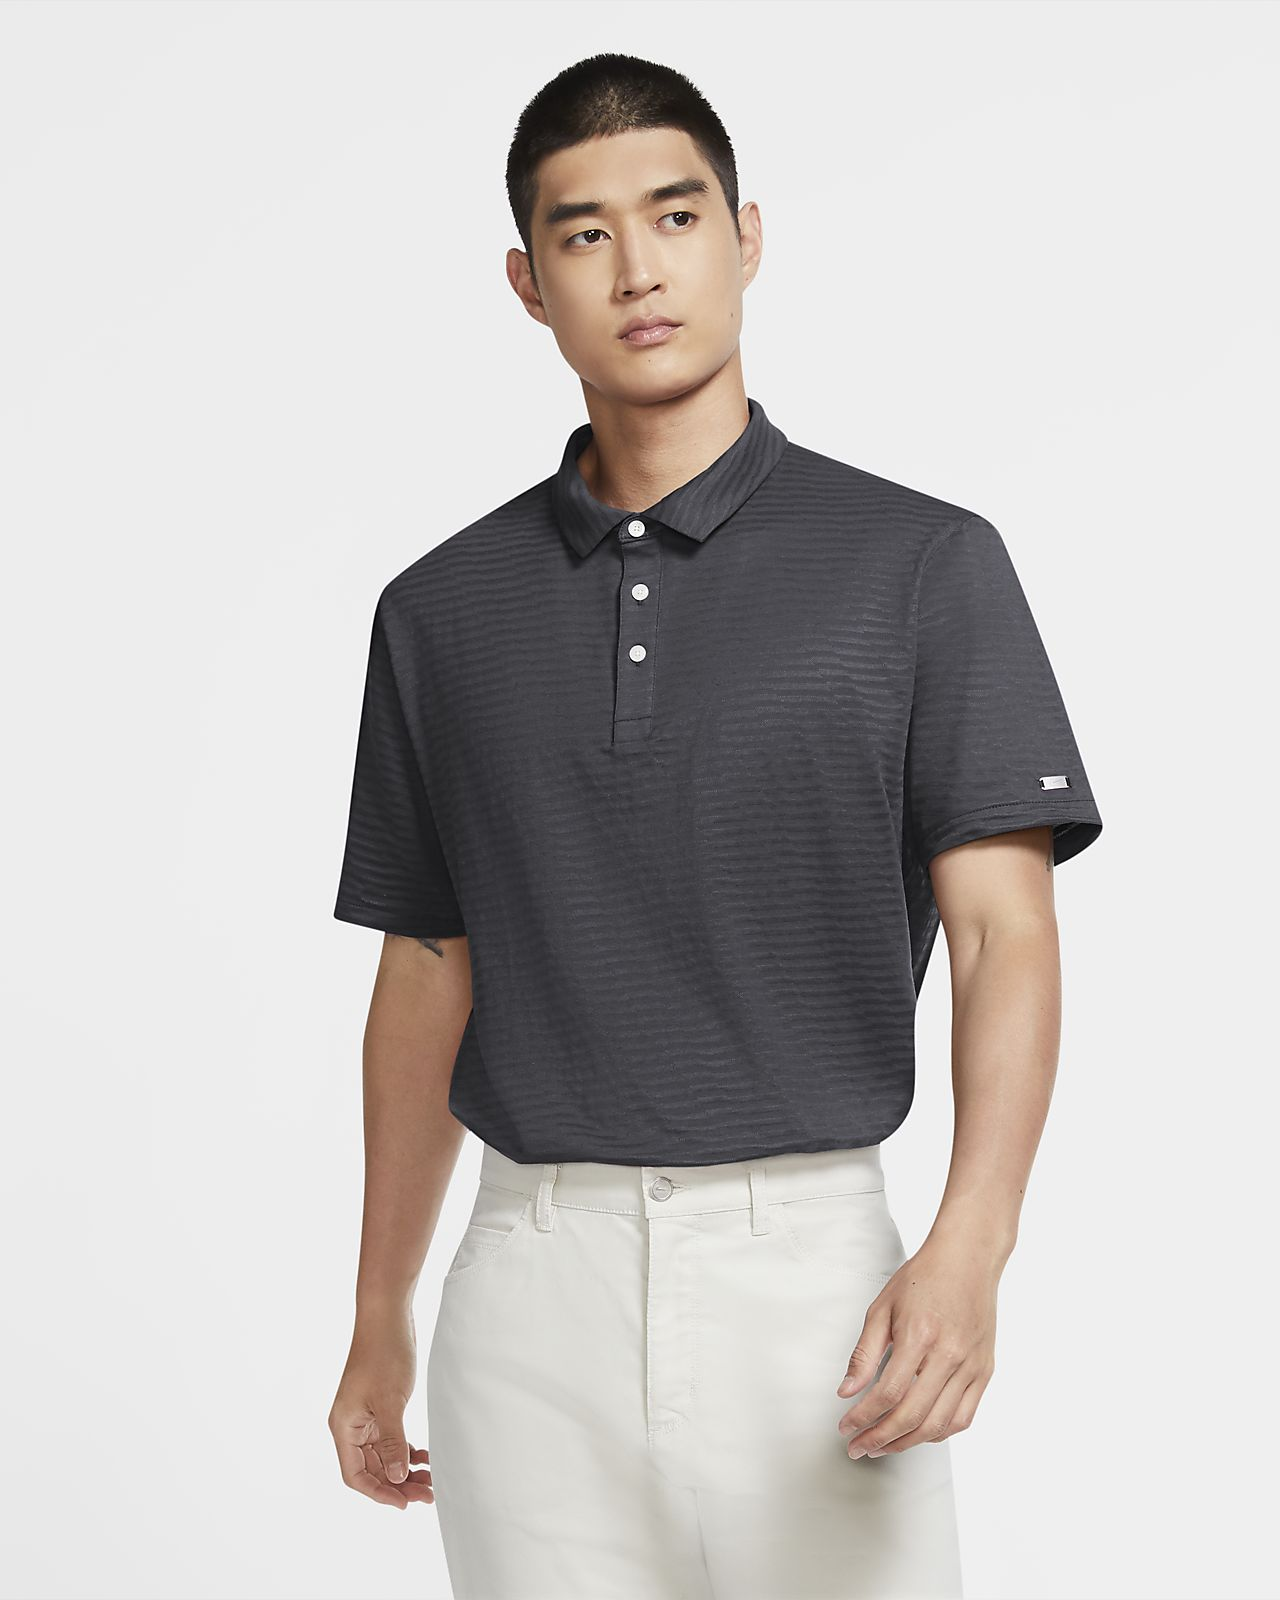 Nike Dri-FIT Player golfskjorte til herre